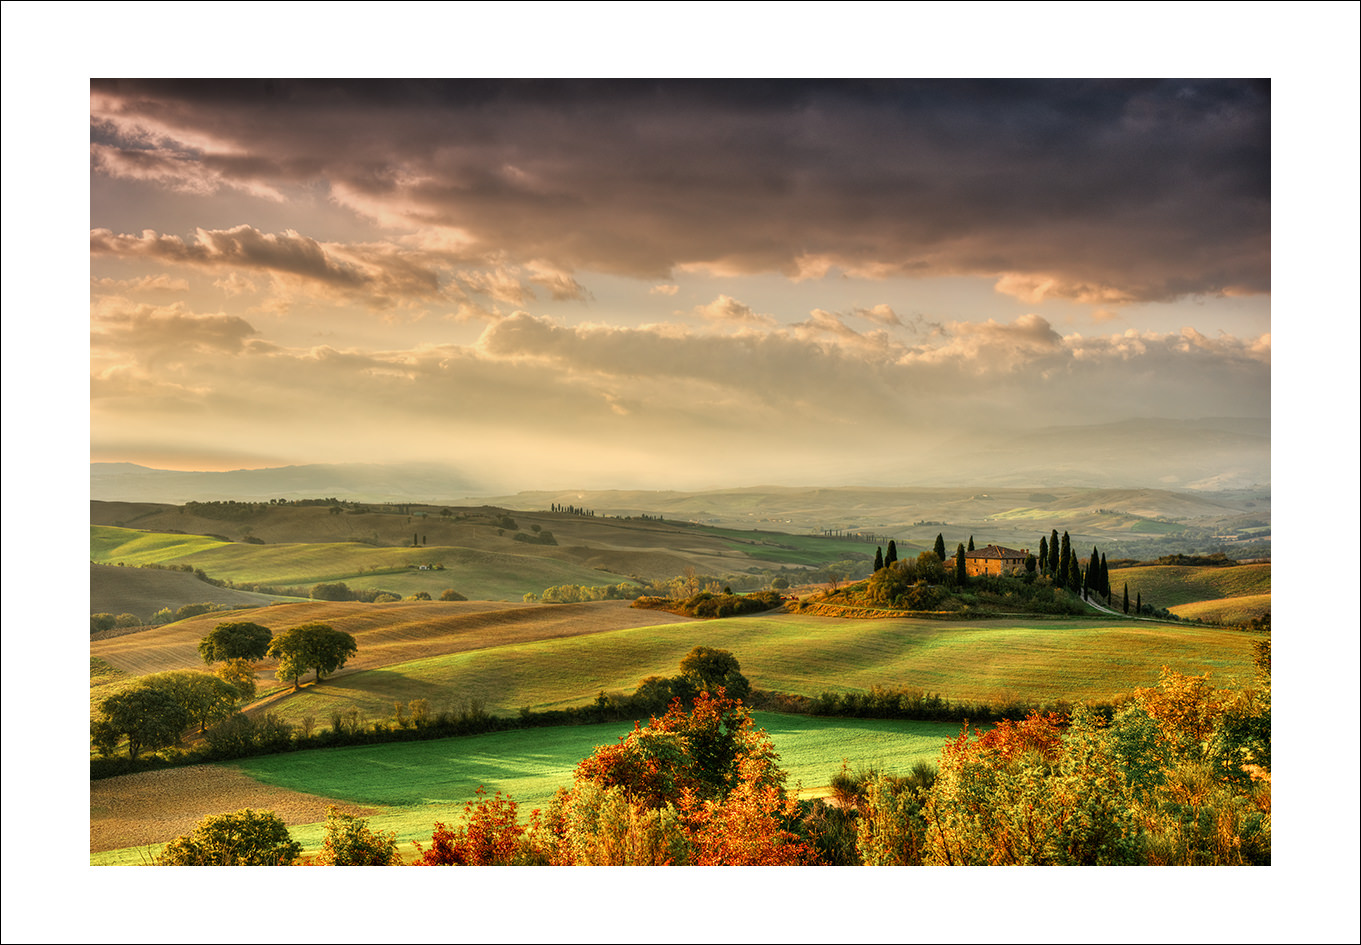 Val d'Orcia view, Belvedere, Tuscany